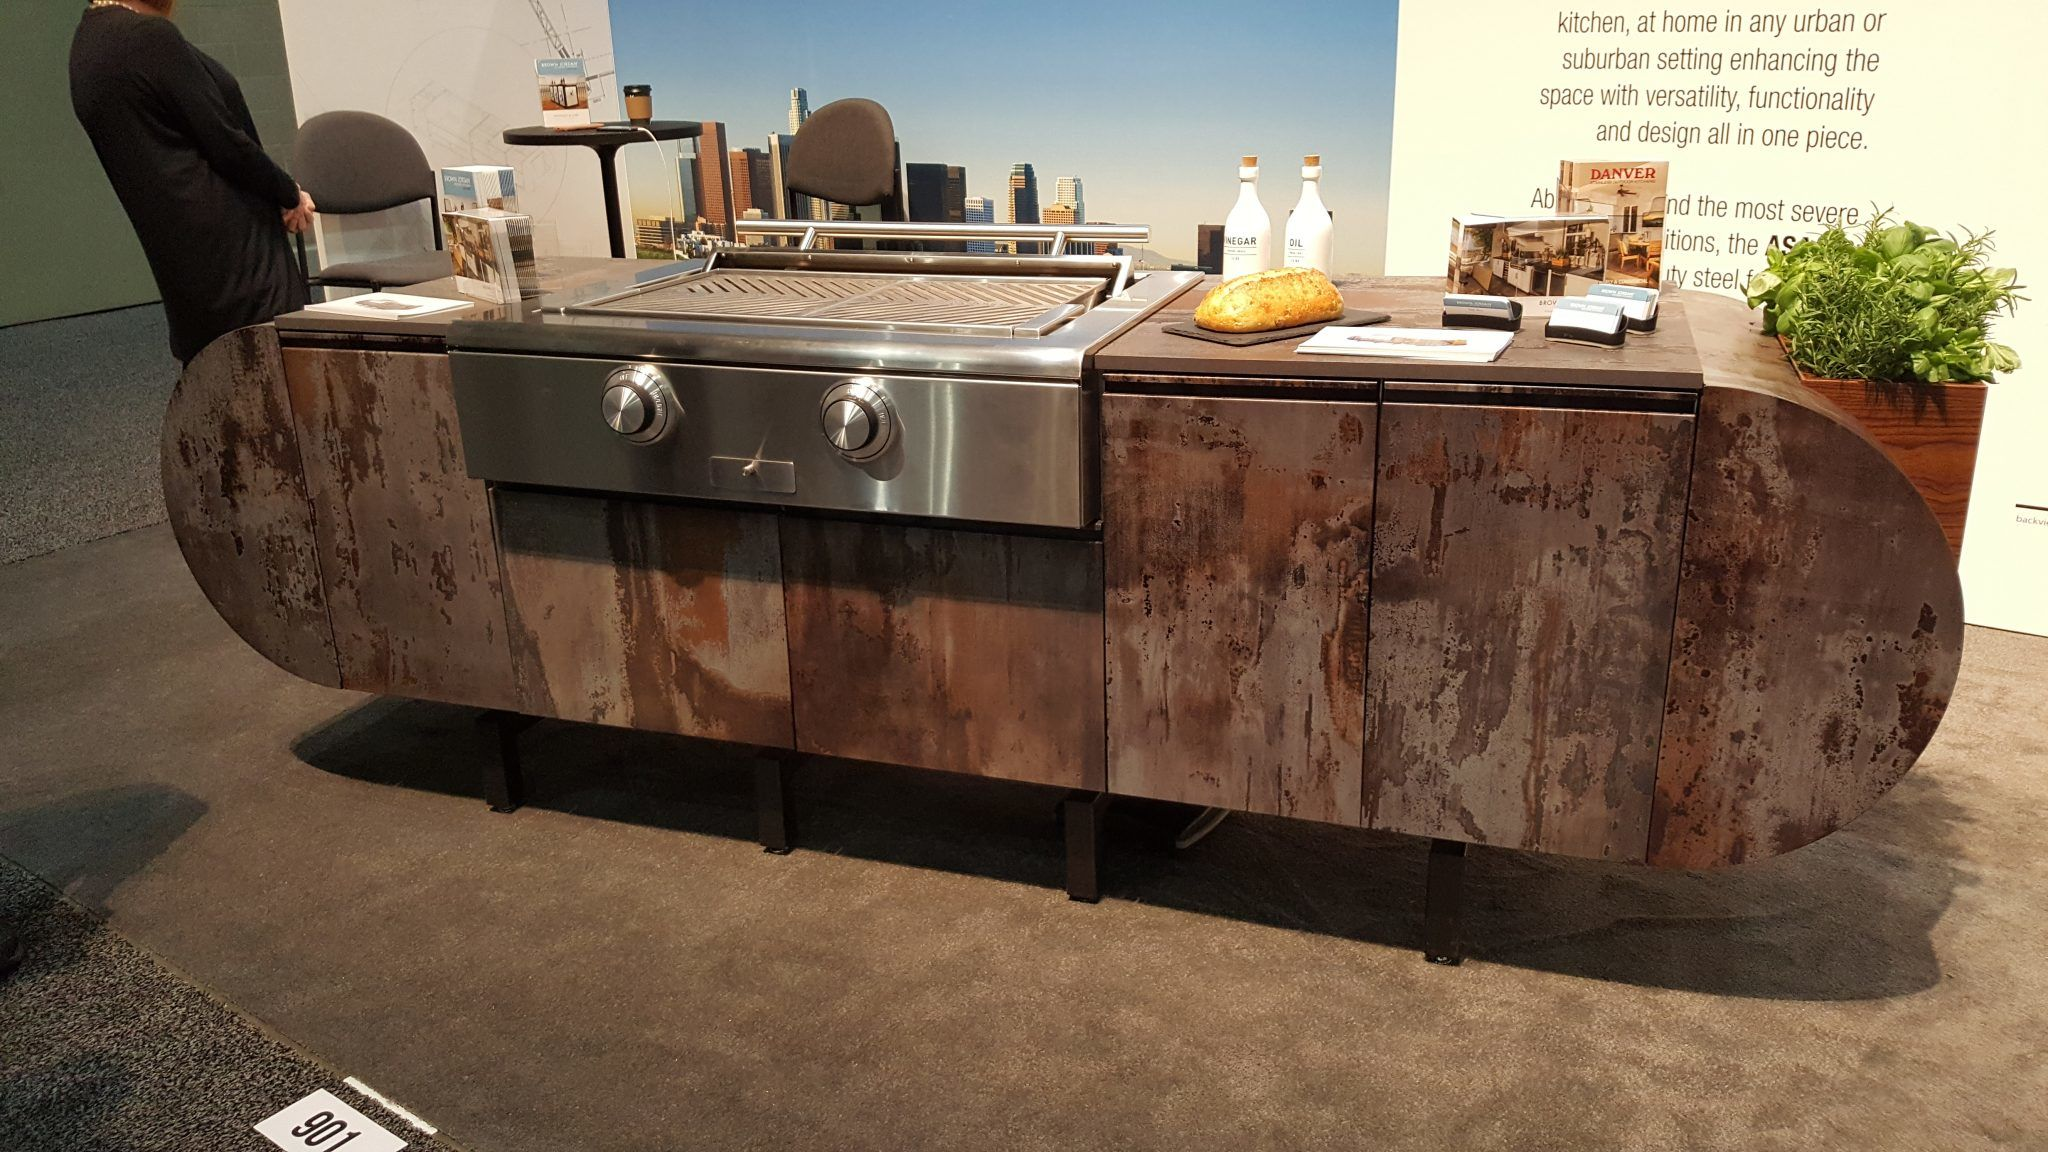 Brown Jordan Stainless Steel Outdoor Kitchen  2 Dwell On Design 2018 Los Angeles